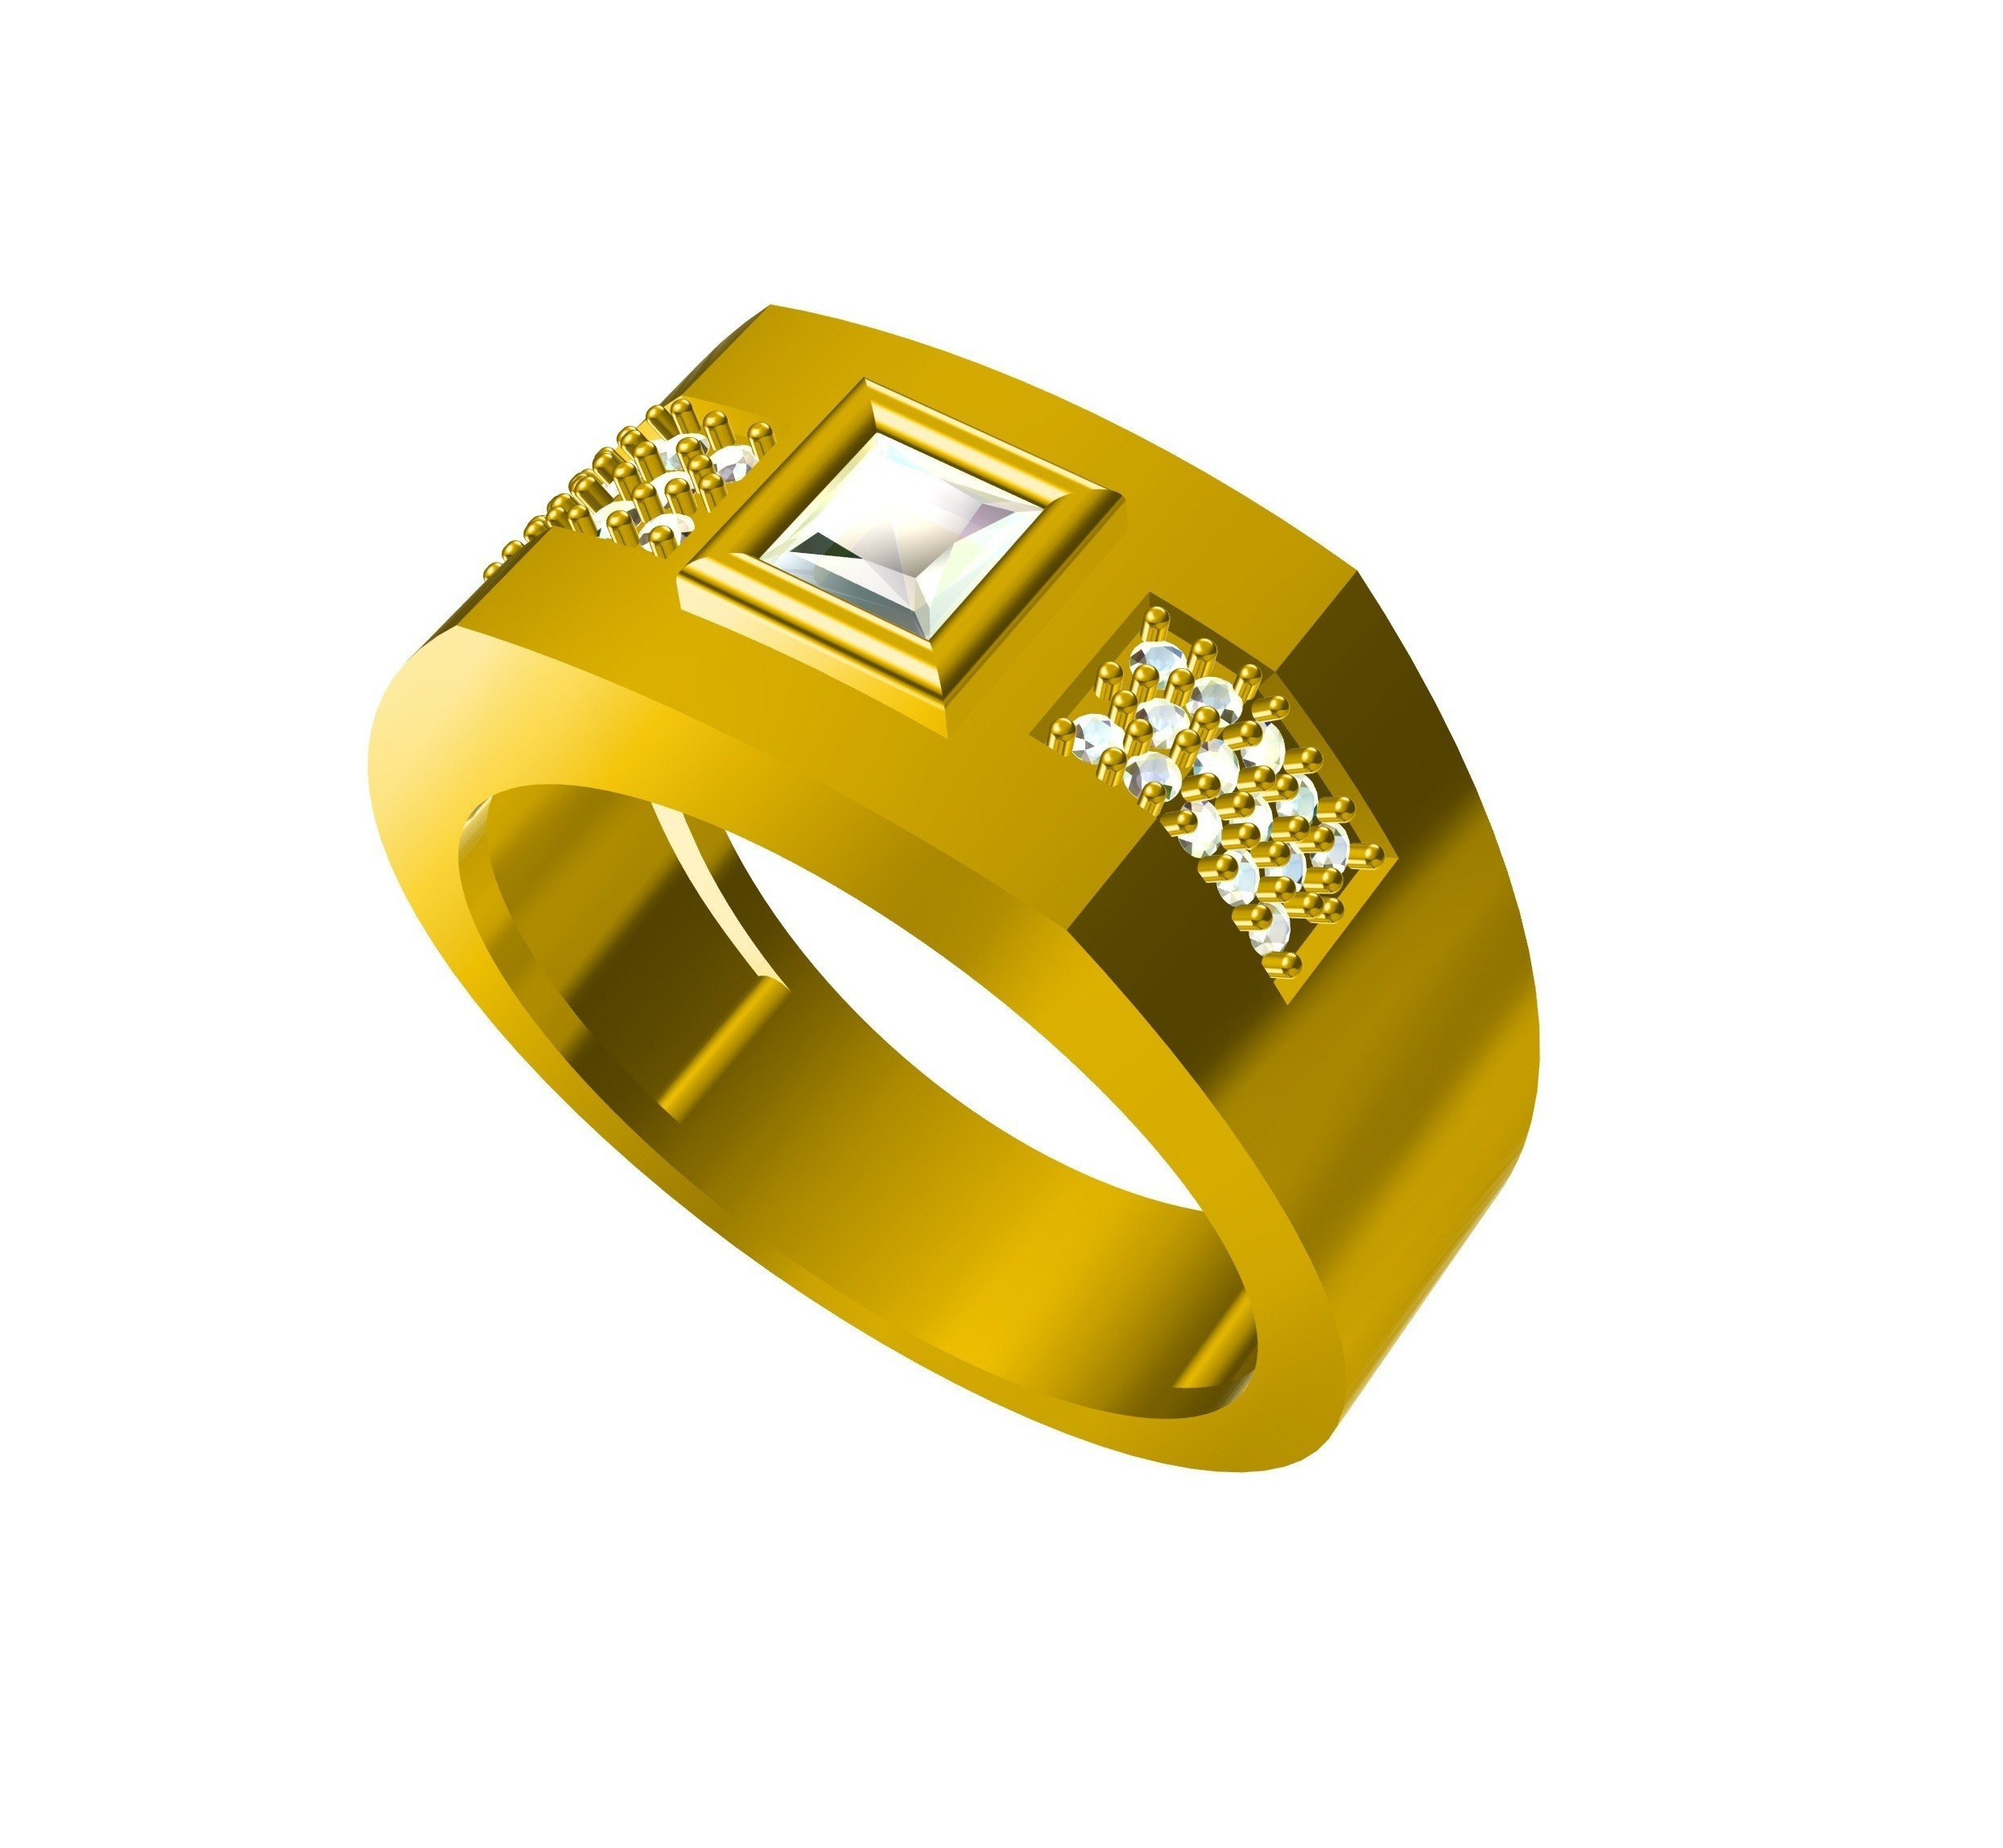 KR00022 2 - Copy.jpg Download free STL file FREE !! jewelry 3D CAD Model Mens Ring • Design to 3D print, VR3D